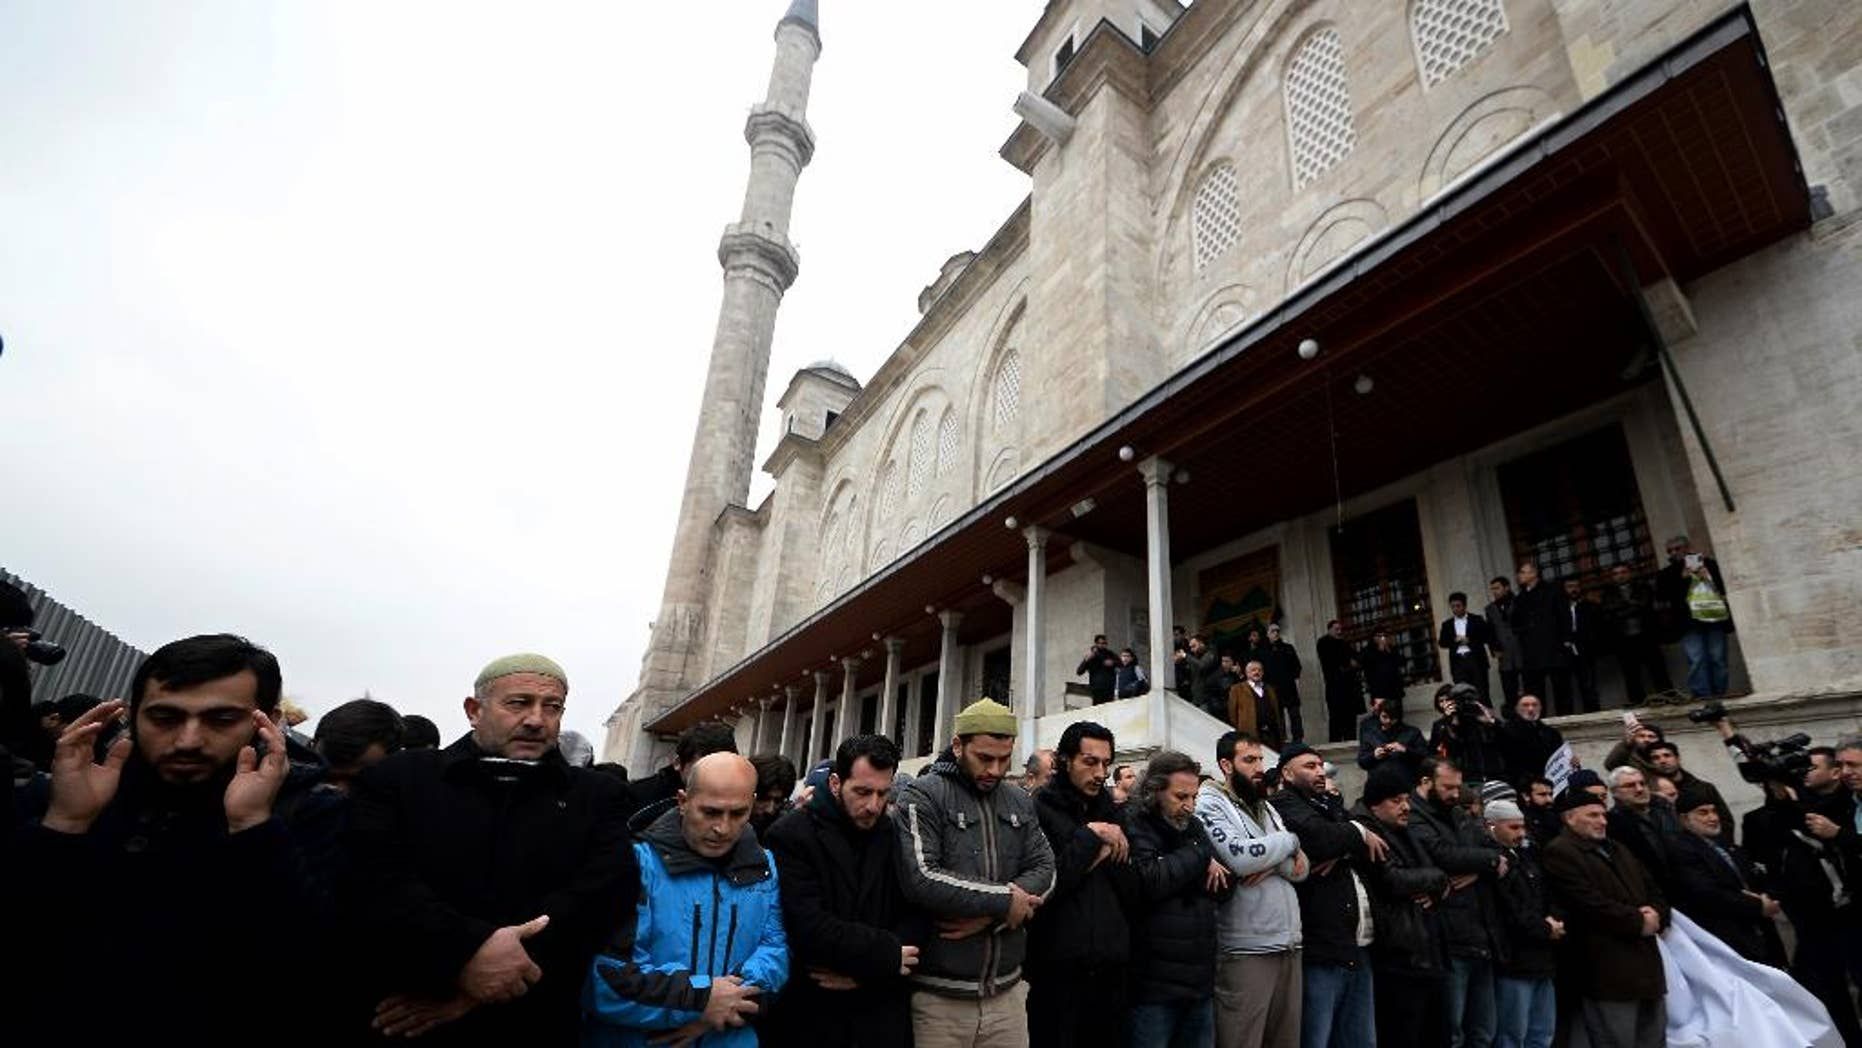 """Members of pro-Islamic groups shout slogans after they held funeral prayers on Friday to honor Cherif and Said Kouachi, the gun-toting brothers who killed 12 people last week in Paris, in Istanbul, Turkey, Friday, Jan. 16, 2015. Some 160 people — all of them men — shouted """"God is great!"""" and they held a banner showing former al-Qaida leader Osama Bin Laden's picture on one side, and the Kouachi brothers superimposed over the Parisian skyline on the other. Smaller posters with """"We are all Cherif"""" and """"We are all Said"""" were bounced up. (AP Photo)"""